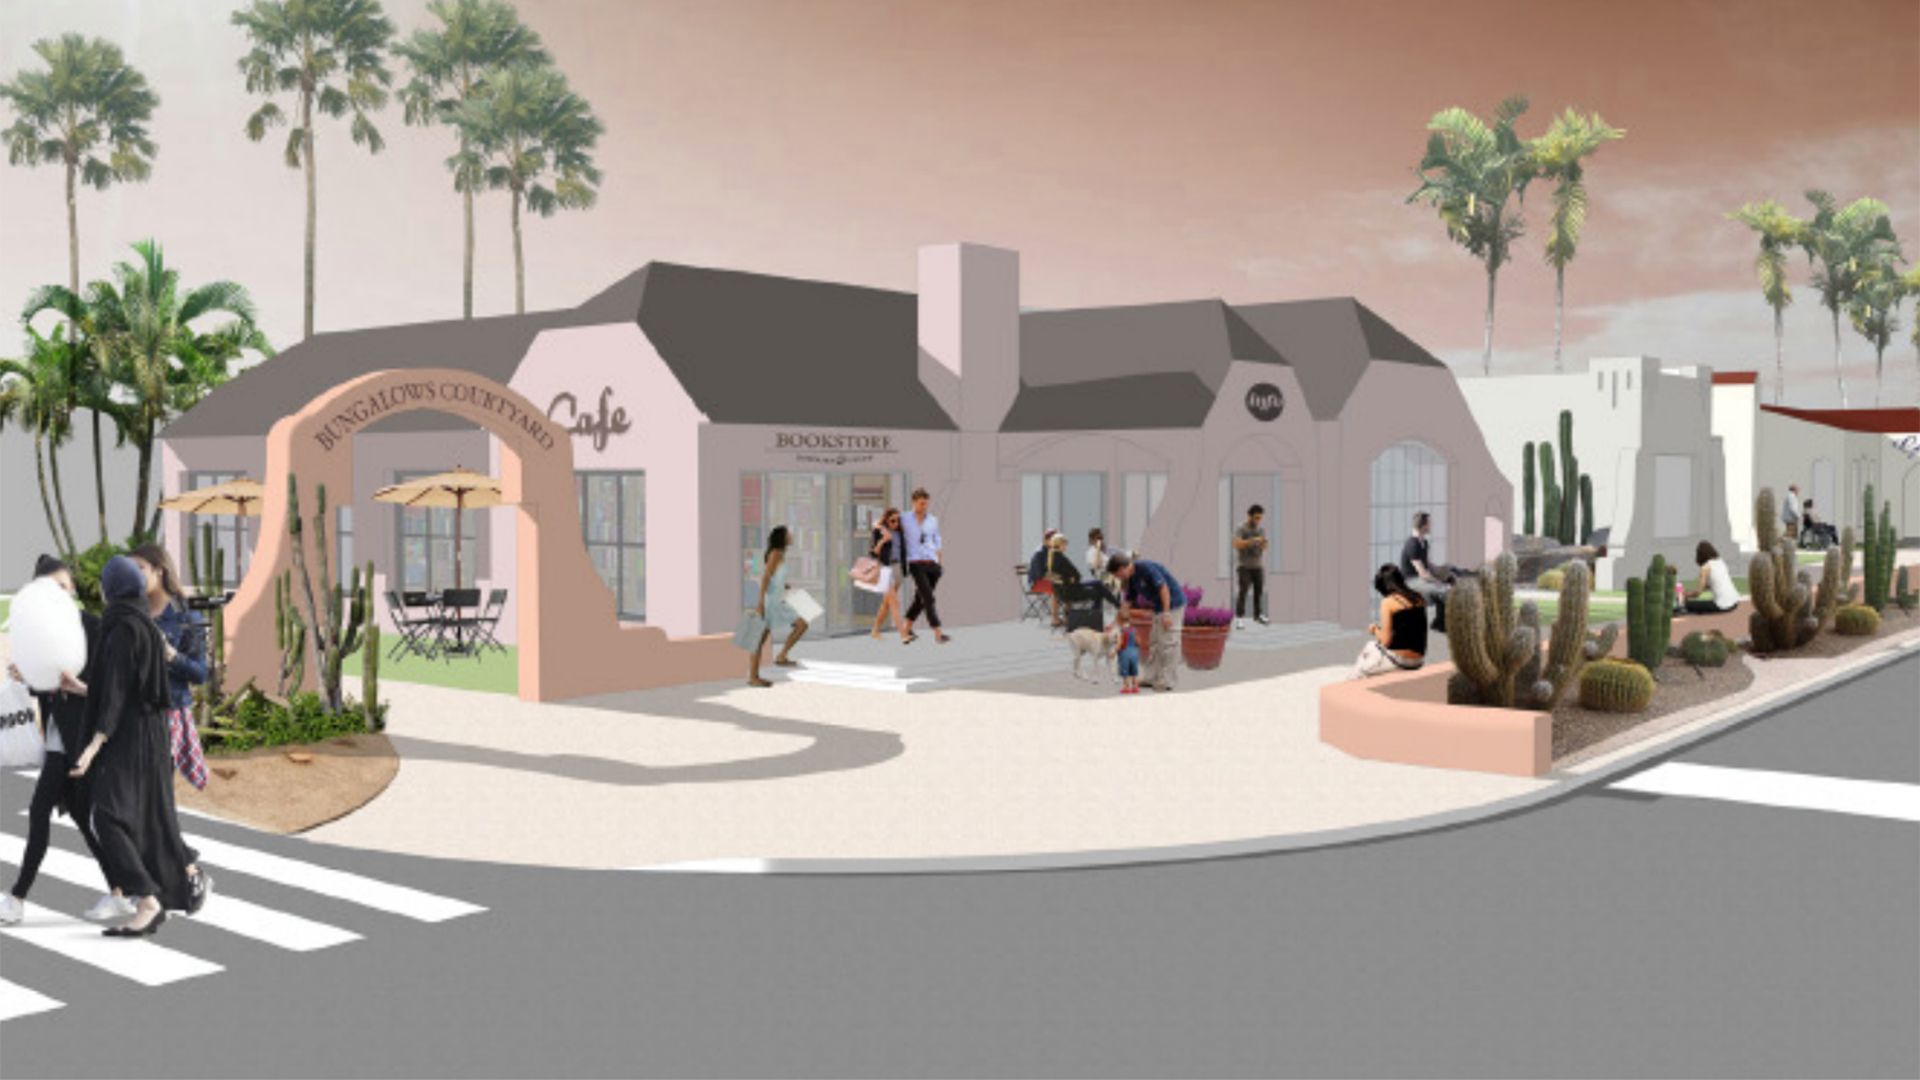 An artists' rendering of what a plaza built around the bungalows could look like.